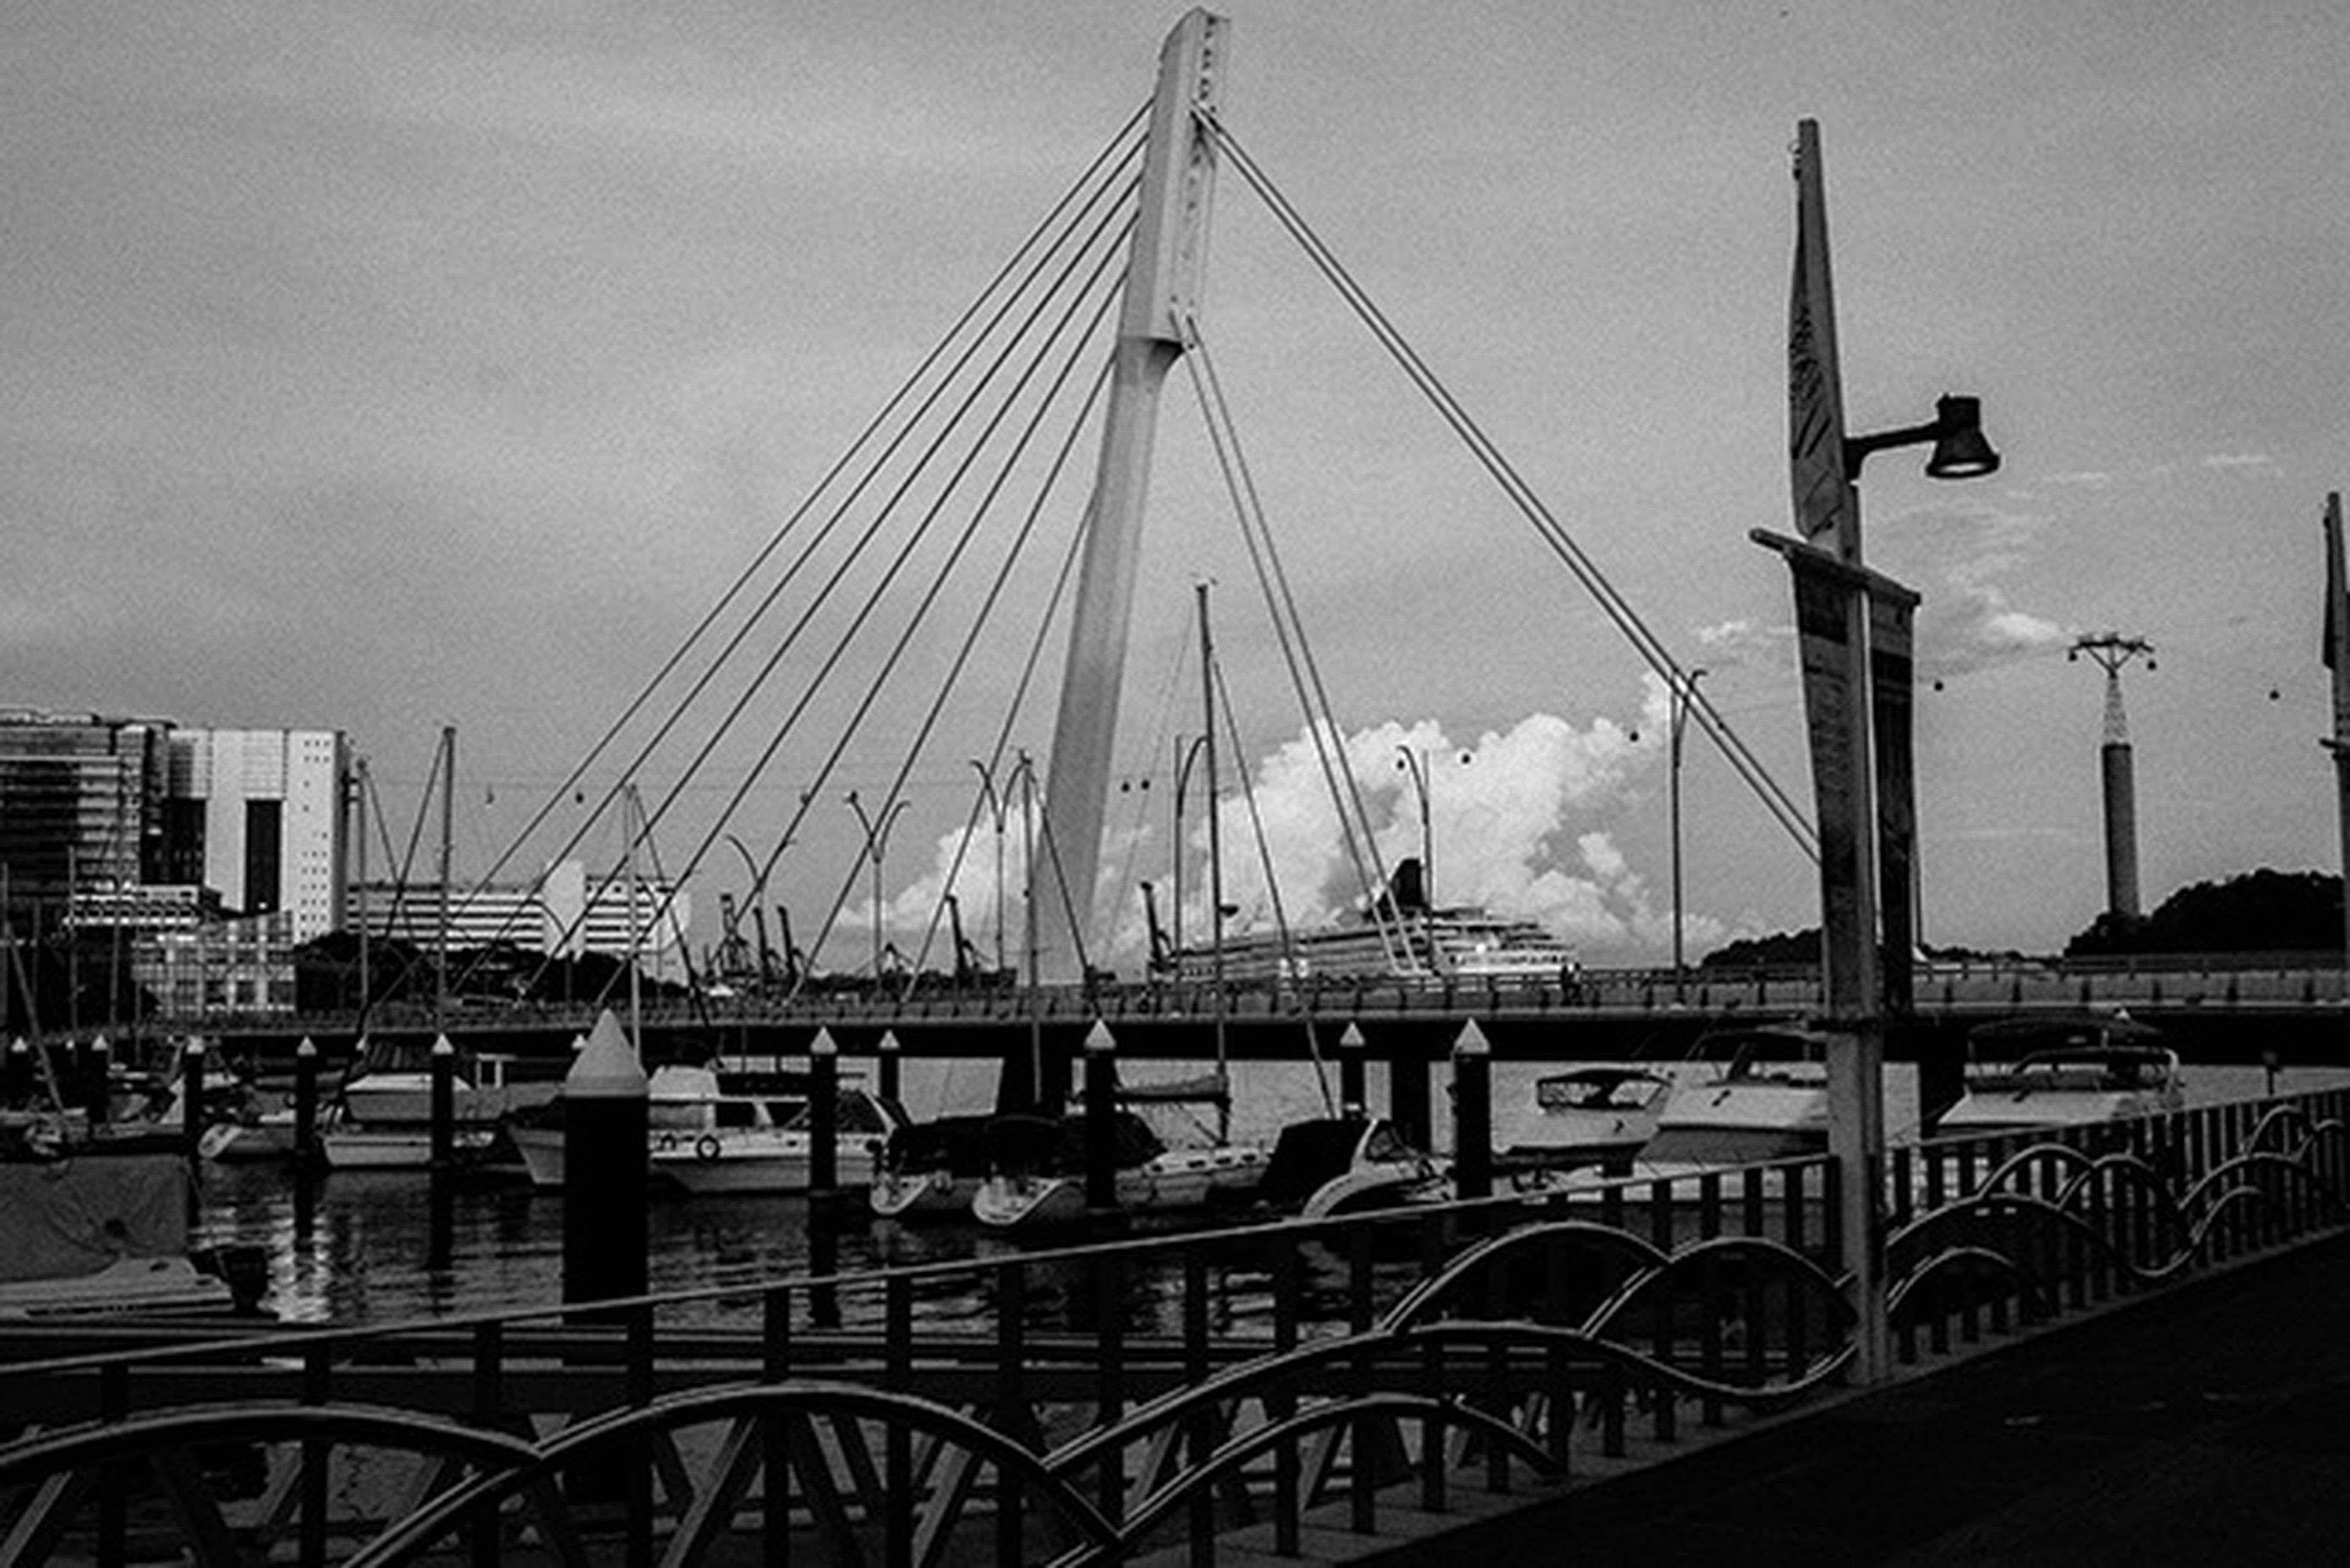 transportation, bridge - man made structure, connection, mode of transport, built structure, sky, architecture, nautical vessel, water, engineering, river, bridge, suspension bridge, railing, boat, travel, cable-stayed bridge, city, outdoors, street light